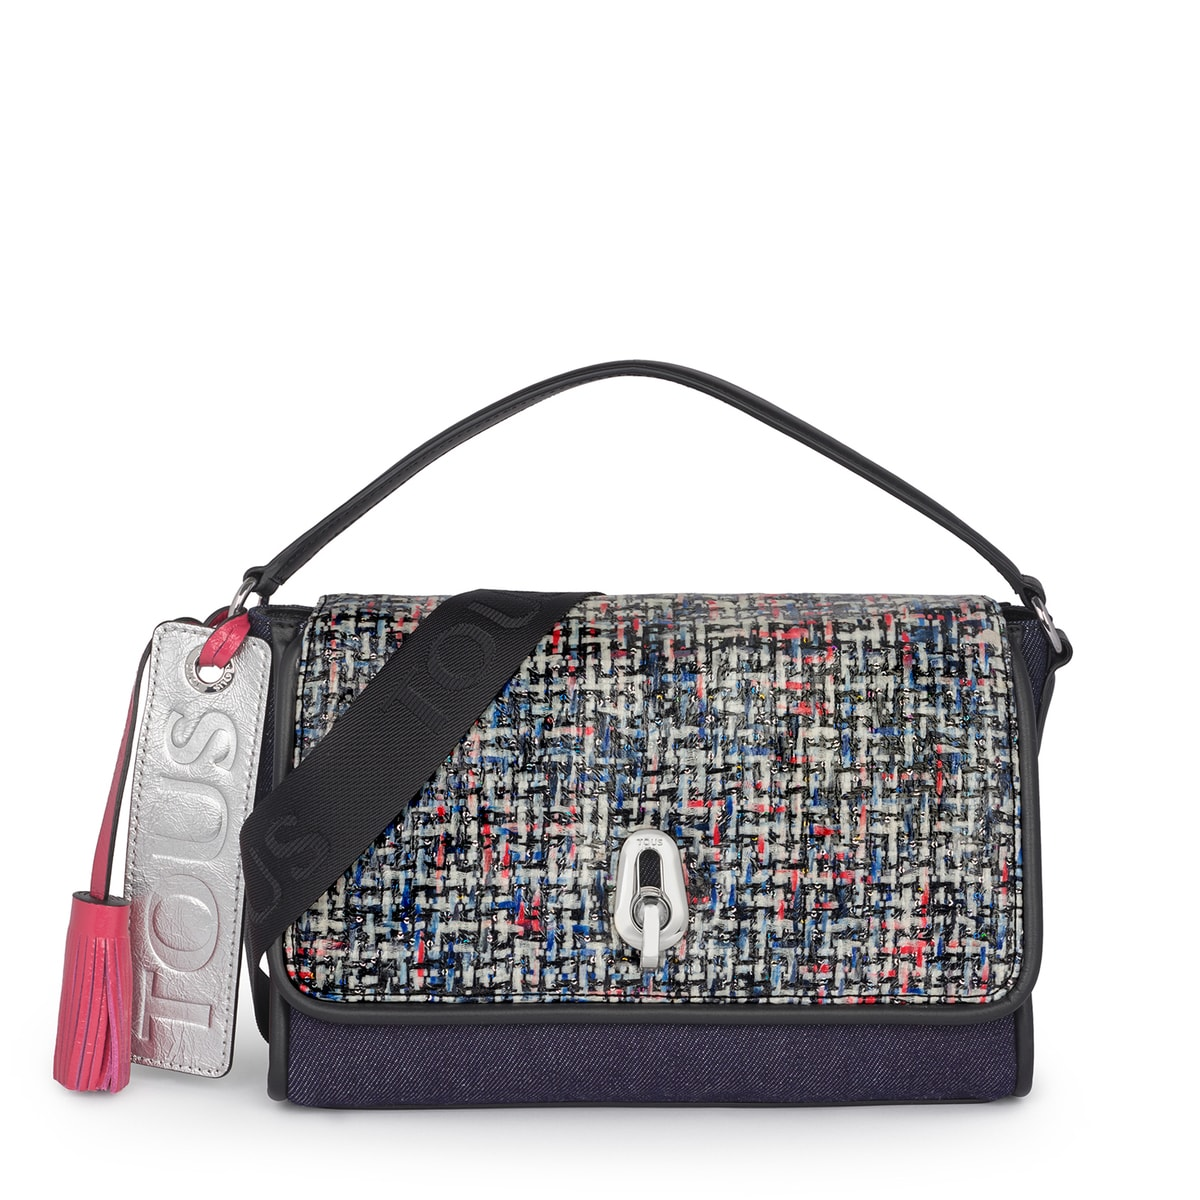 Bandolera pequeña Bridgy Tweed multicolor jeans